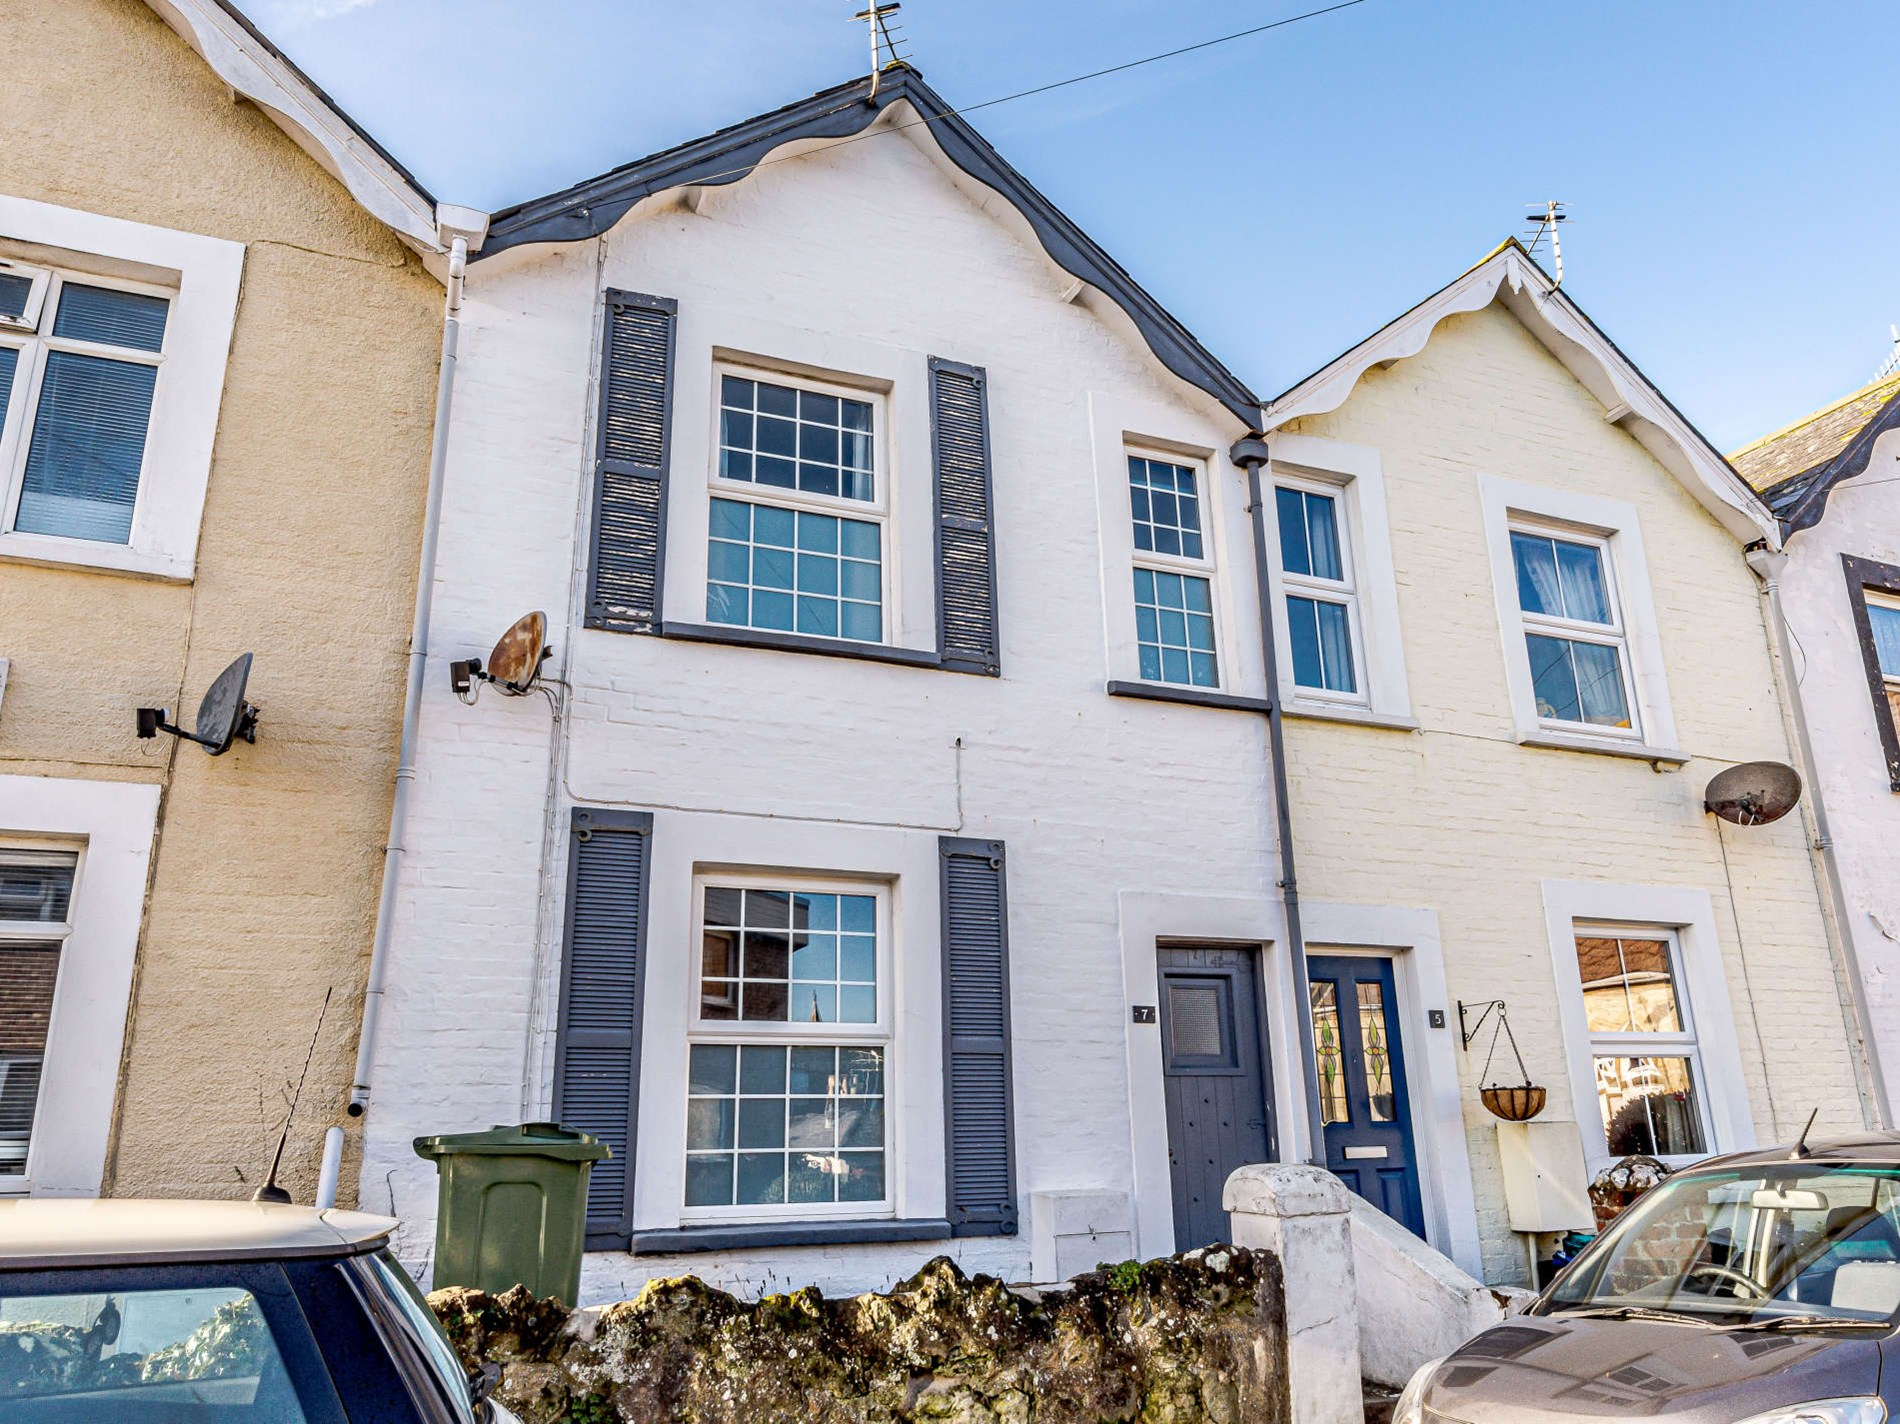 3 Bedroom Cottage in Shanklin, South of England